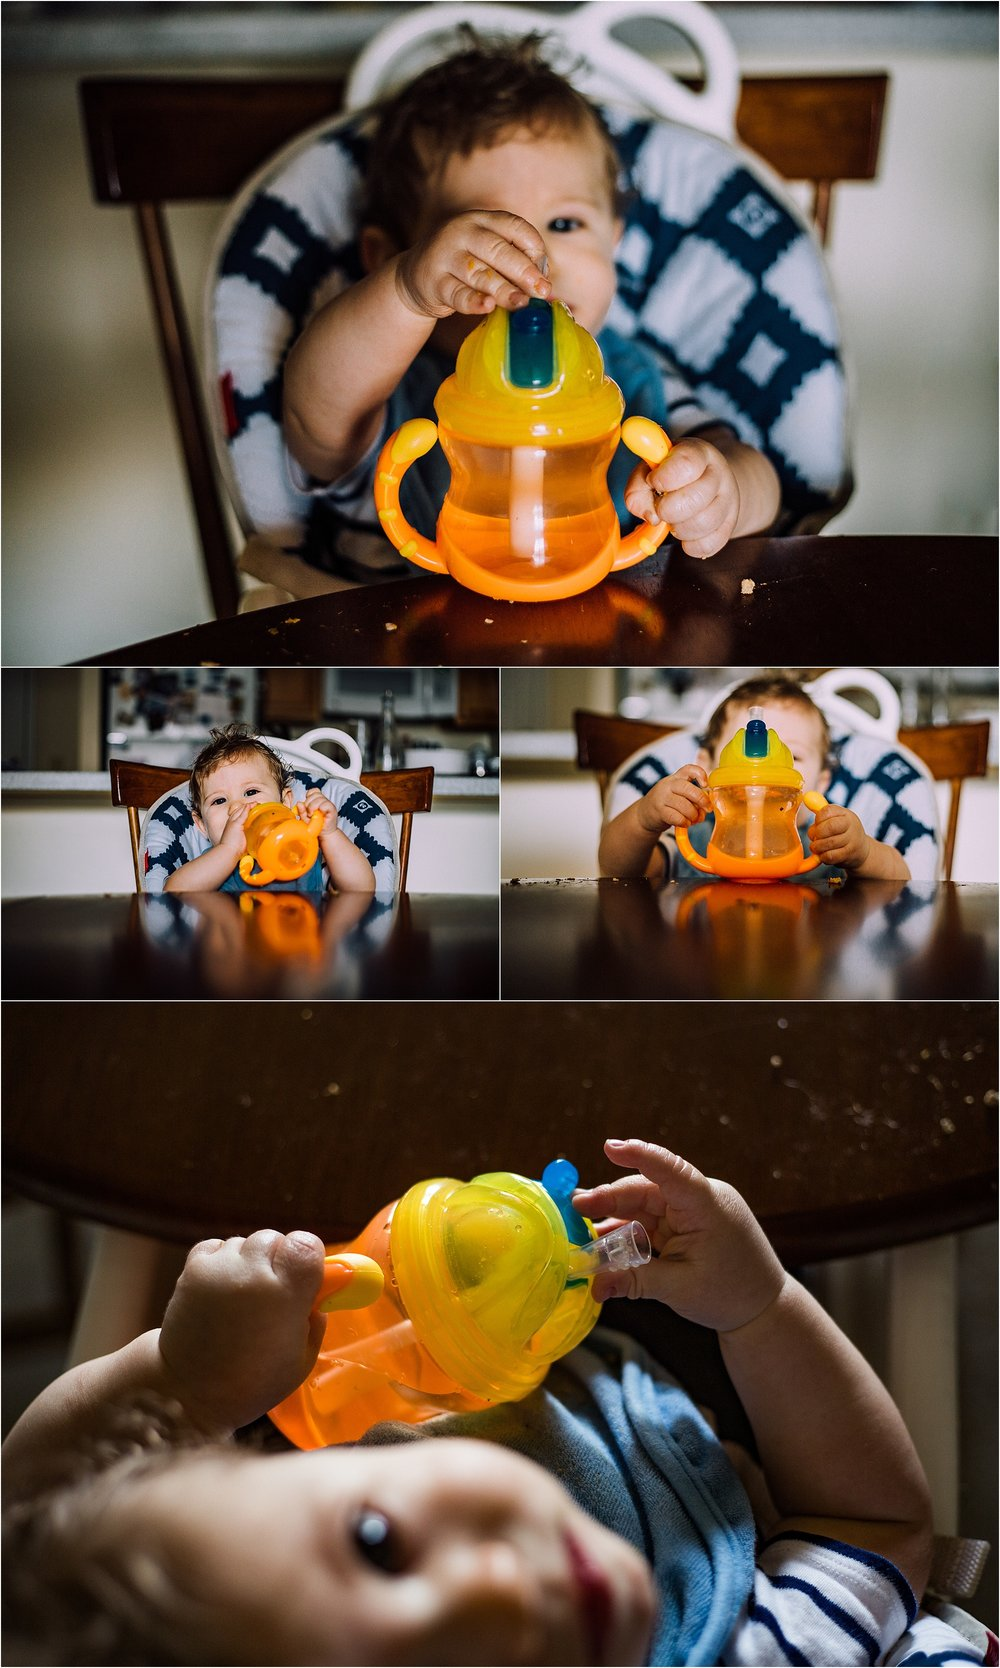 Nuby product reviews by Rachel K Photo